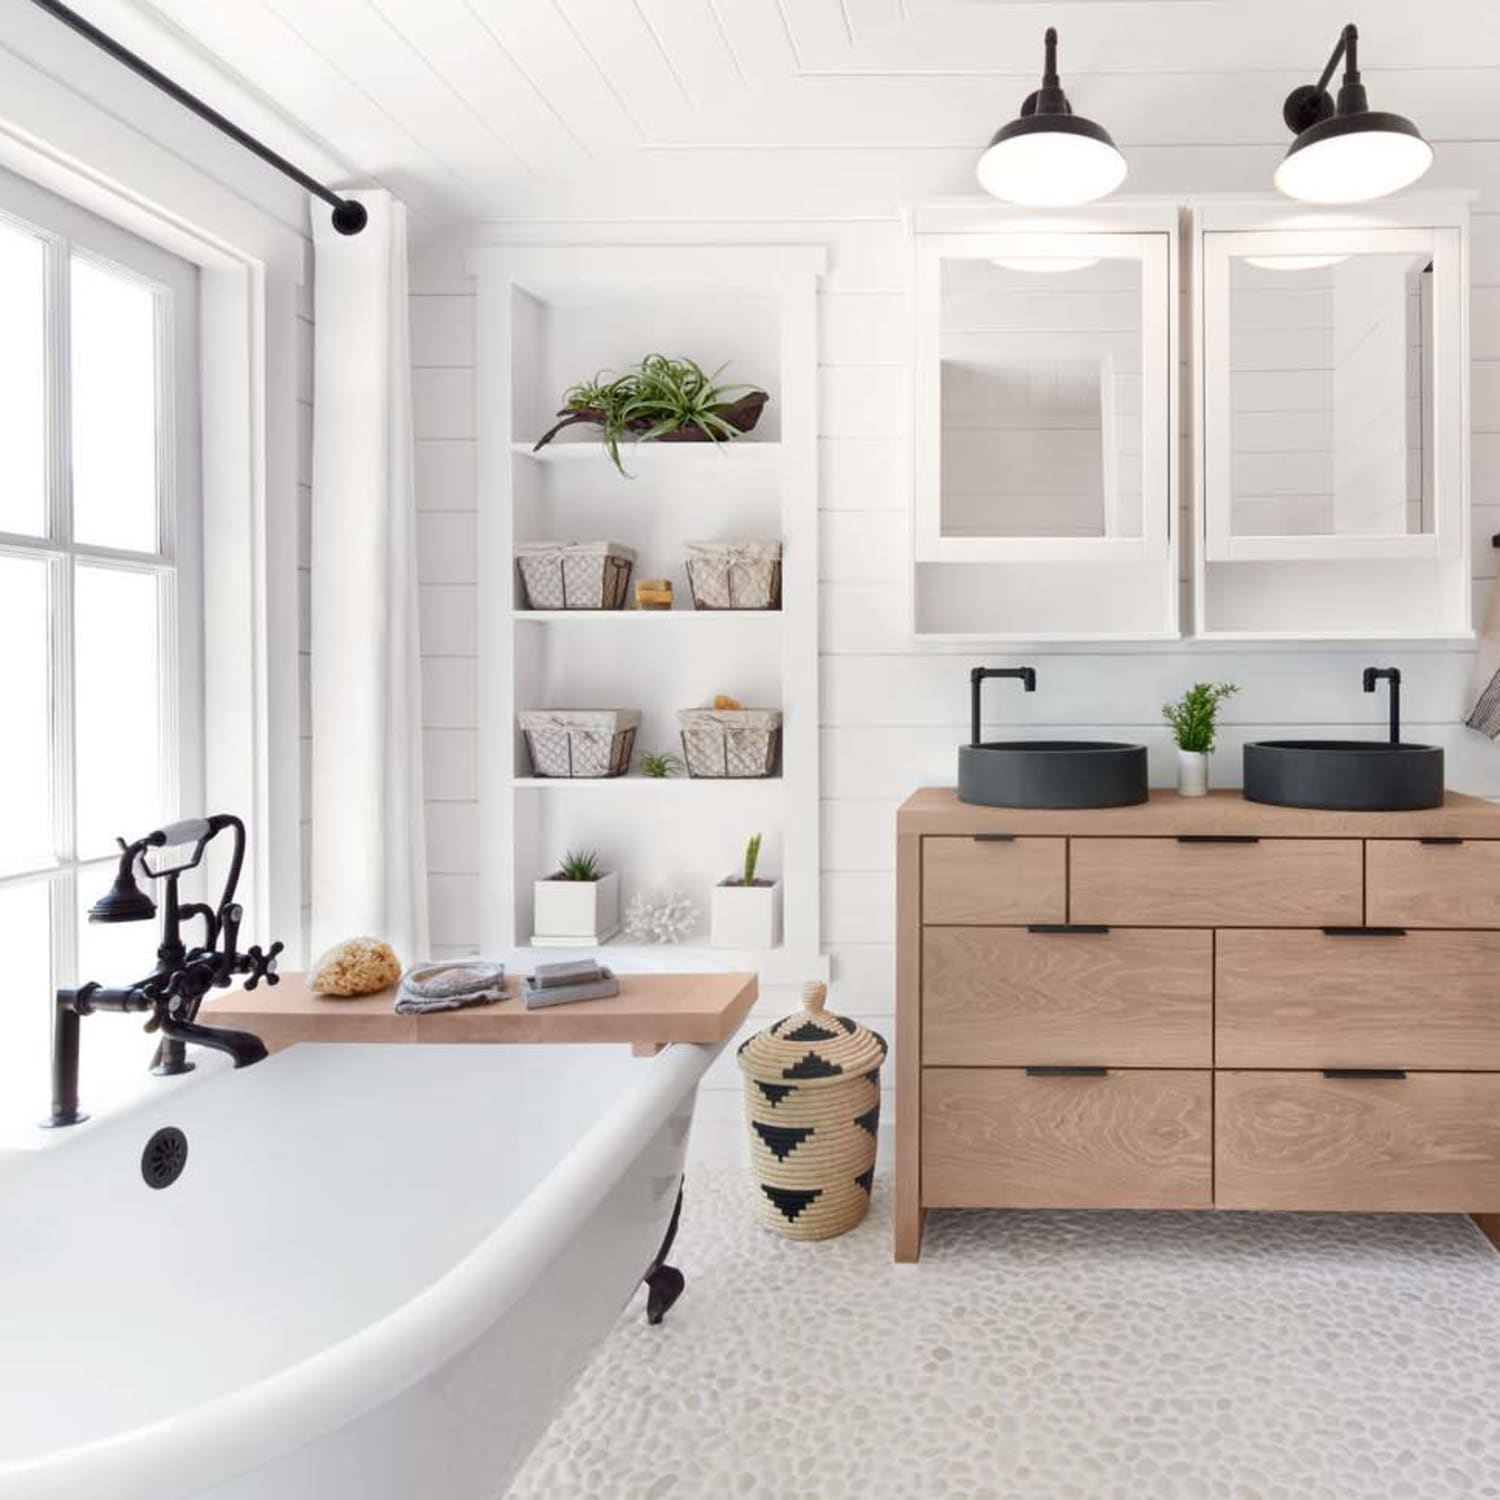 Marvelous Outdated Bathroom Trends According To Real Estate Agents Pabps2019 Chair Design Images Pabps2019Com